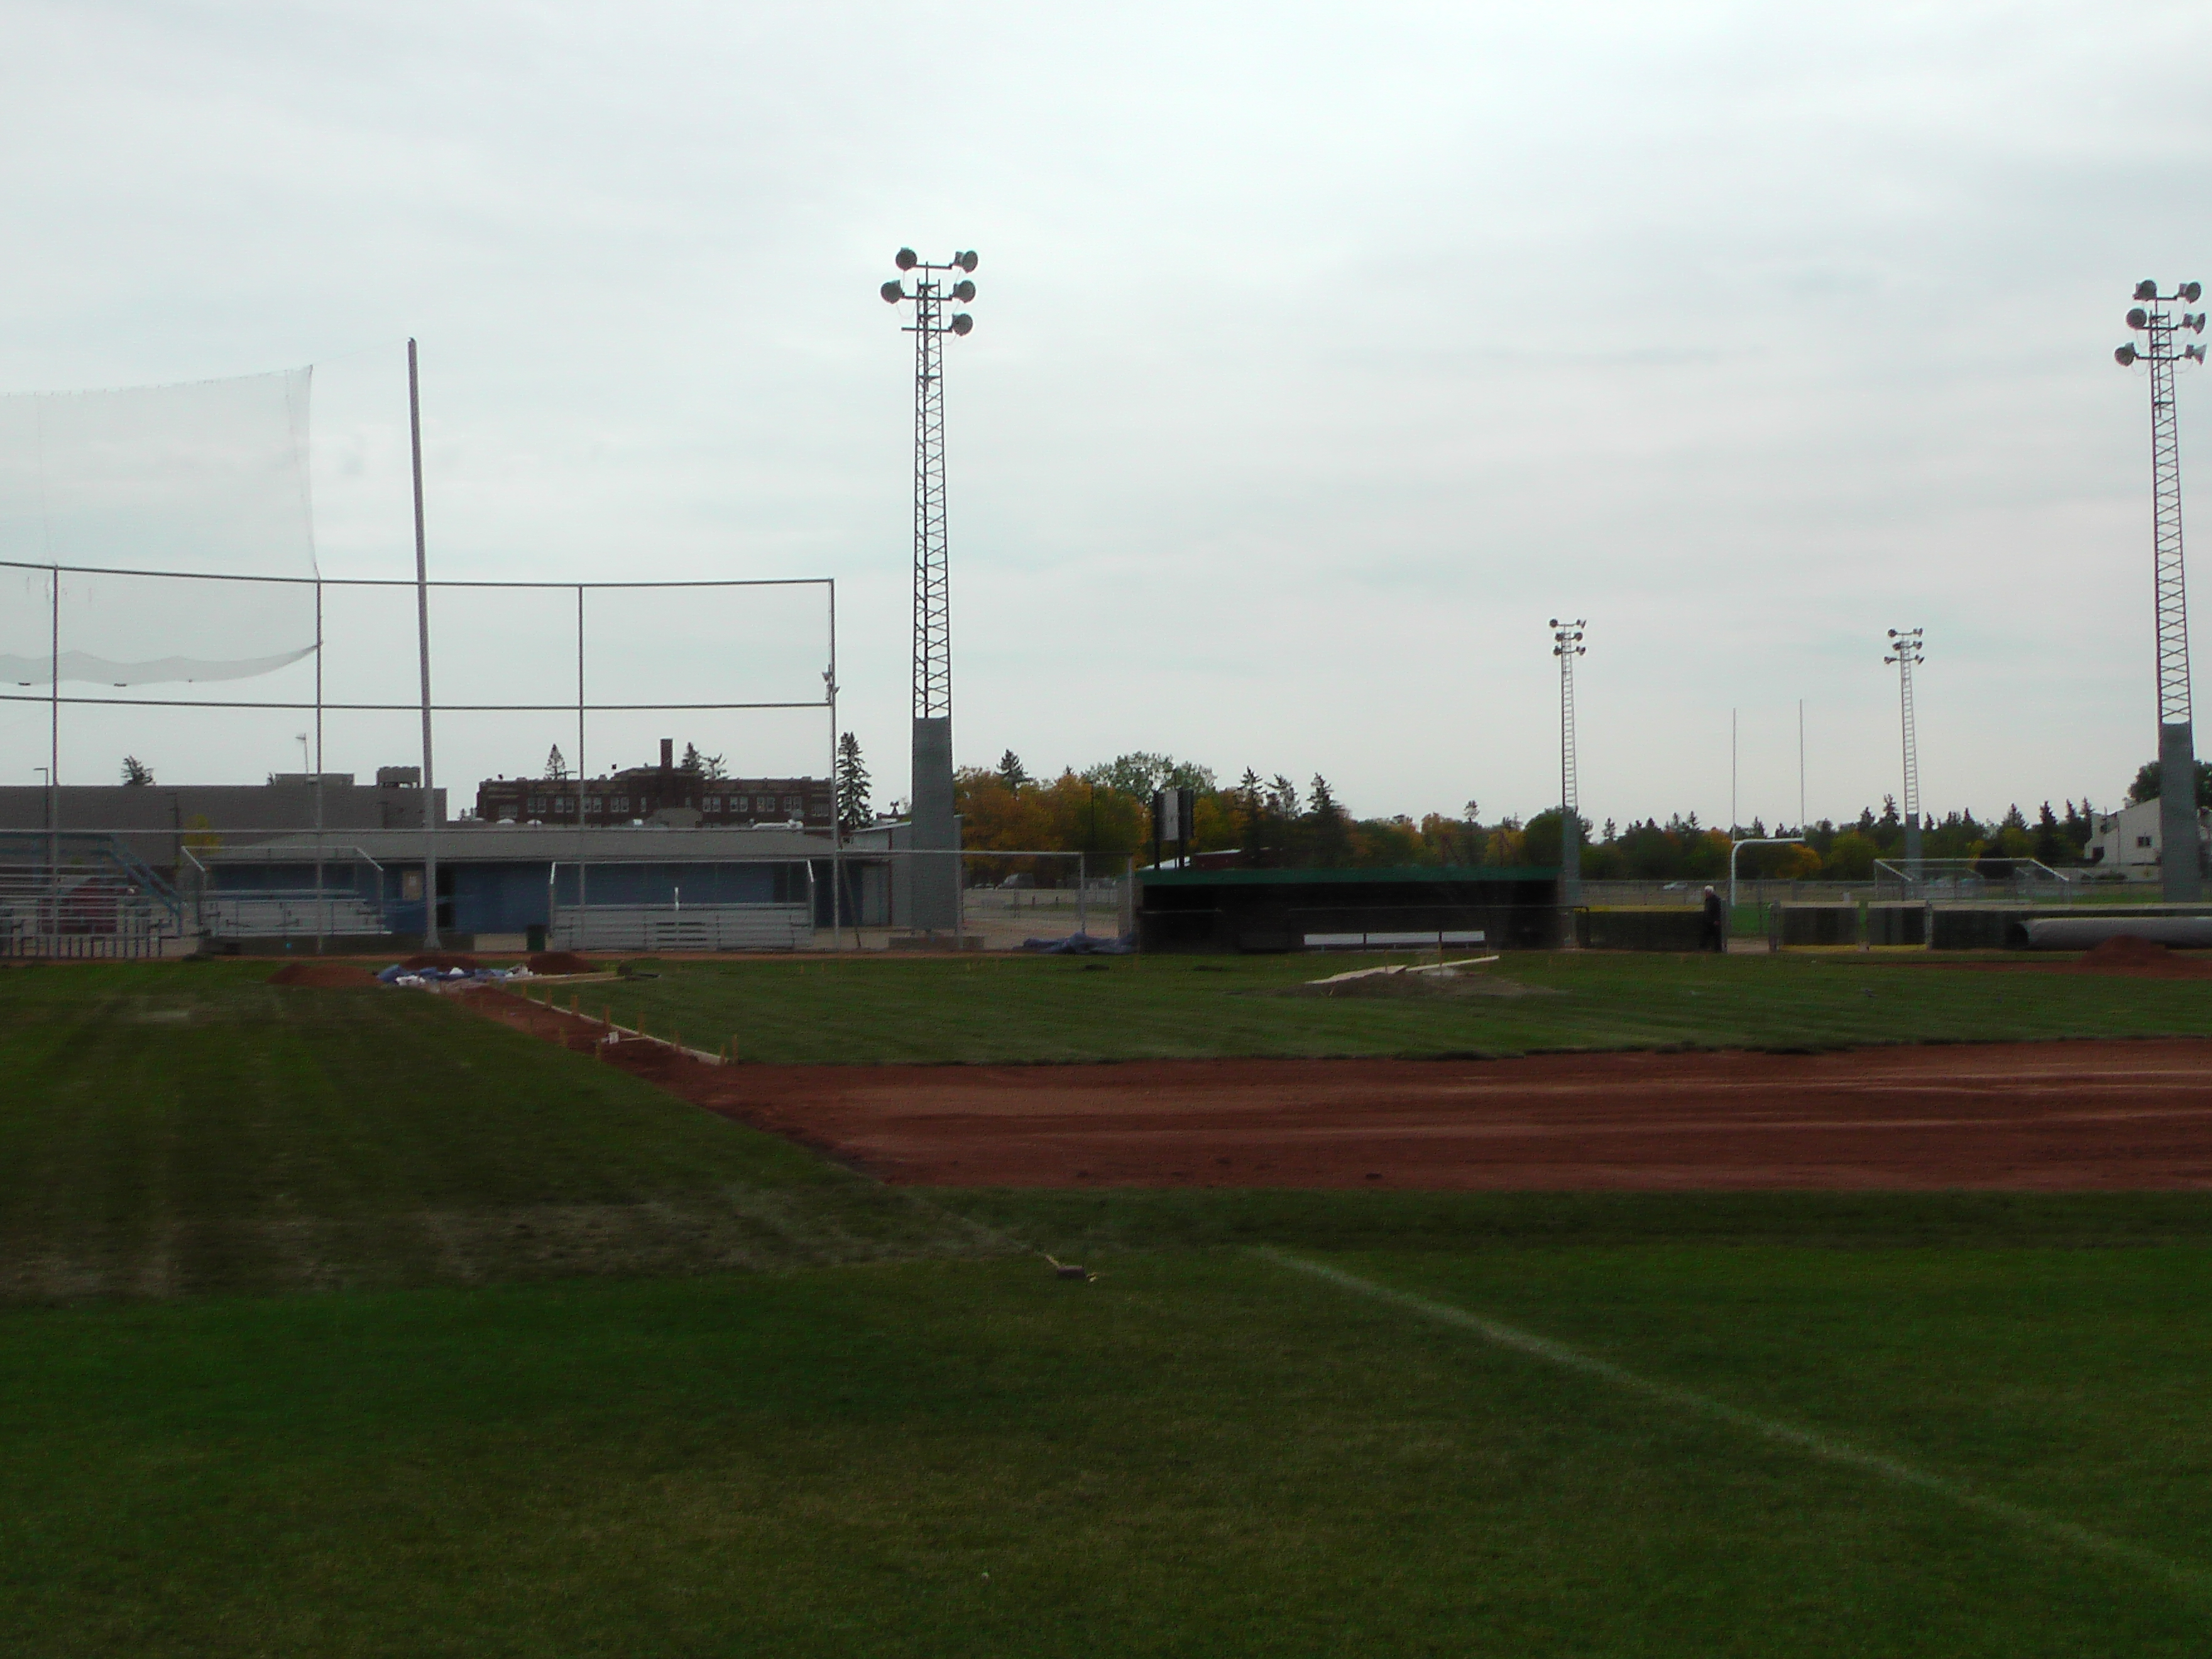 Sept 7 & 8 2018, Optimist Park Field Renovations, sod down being watered - Image 14